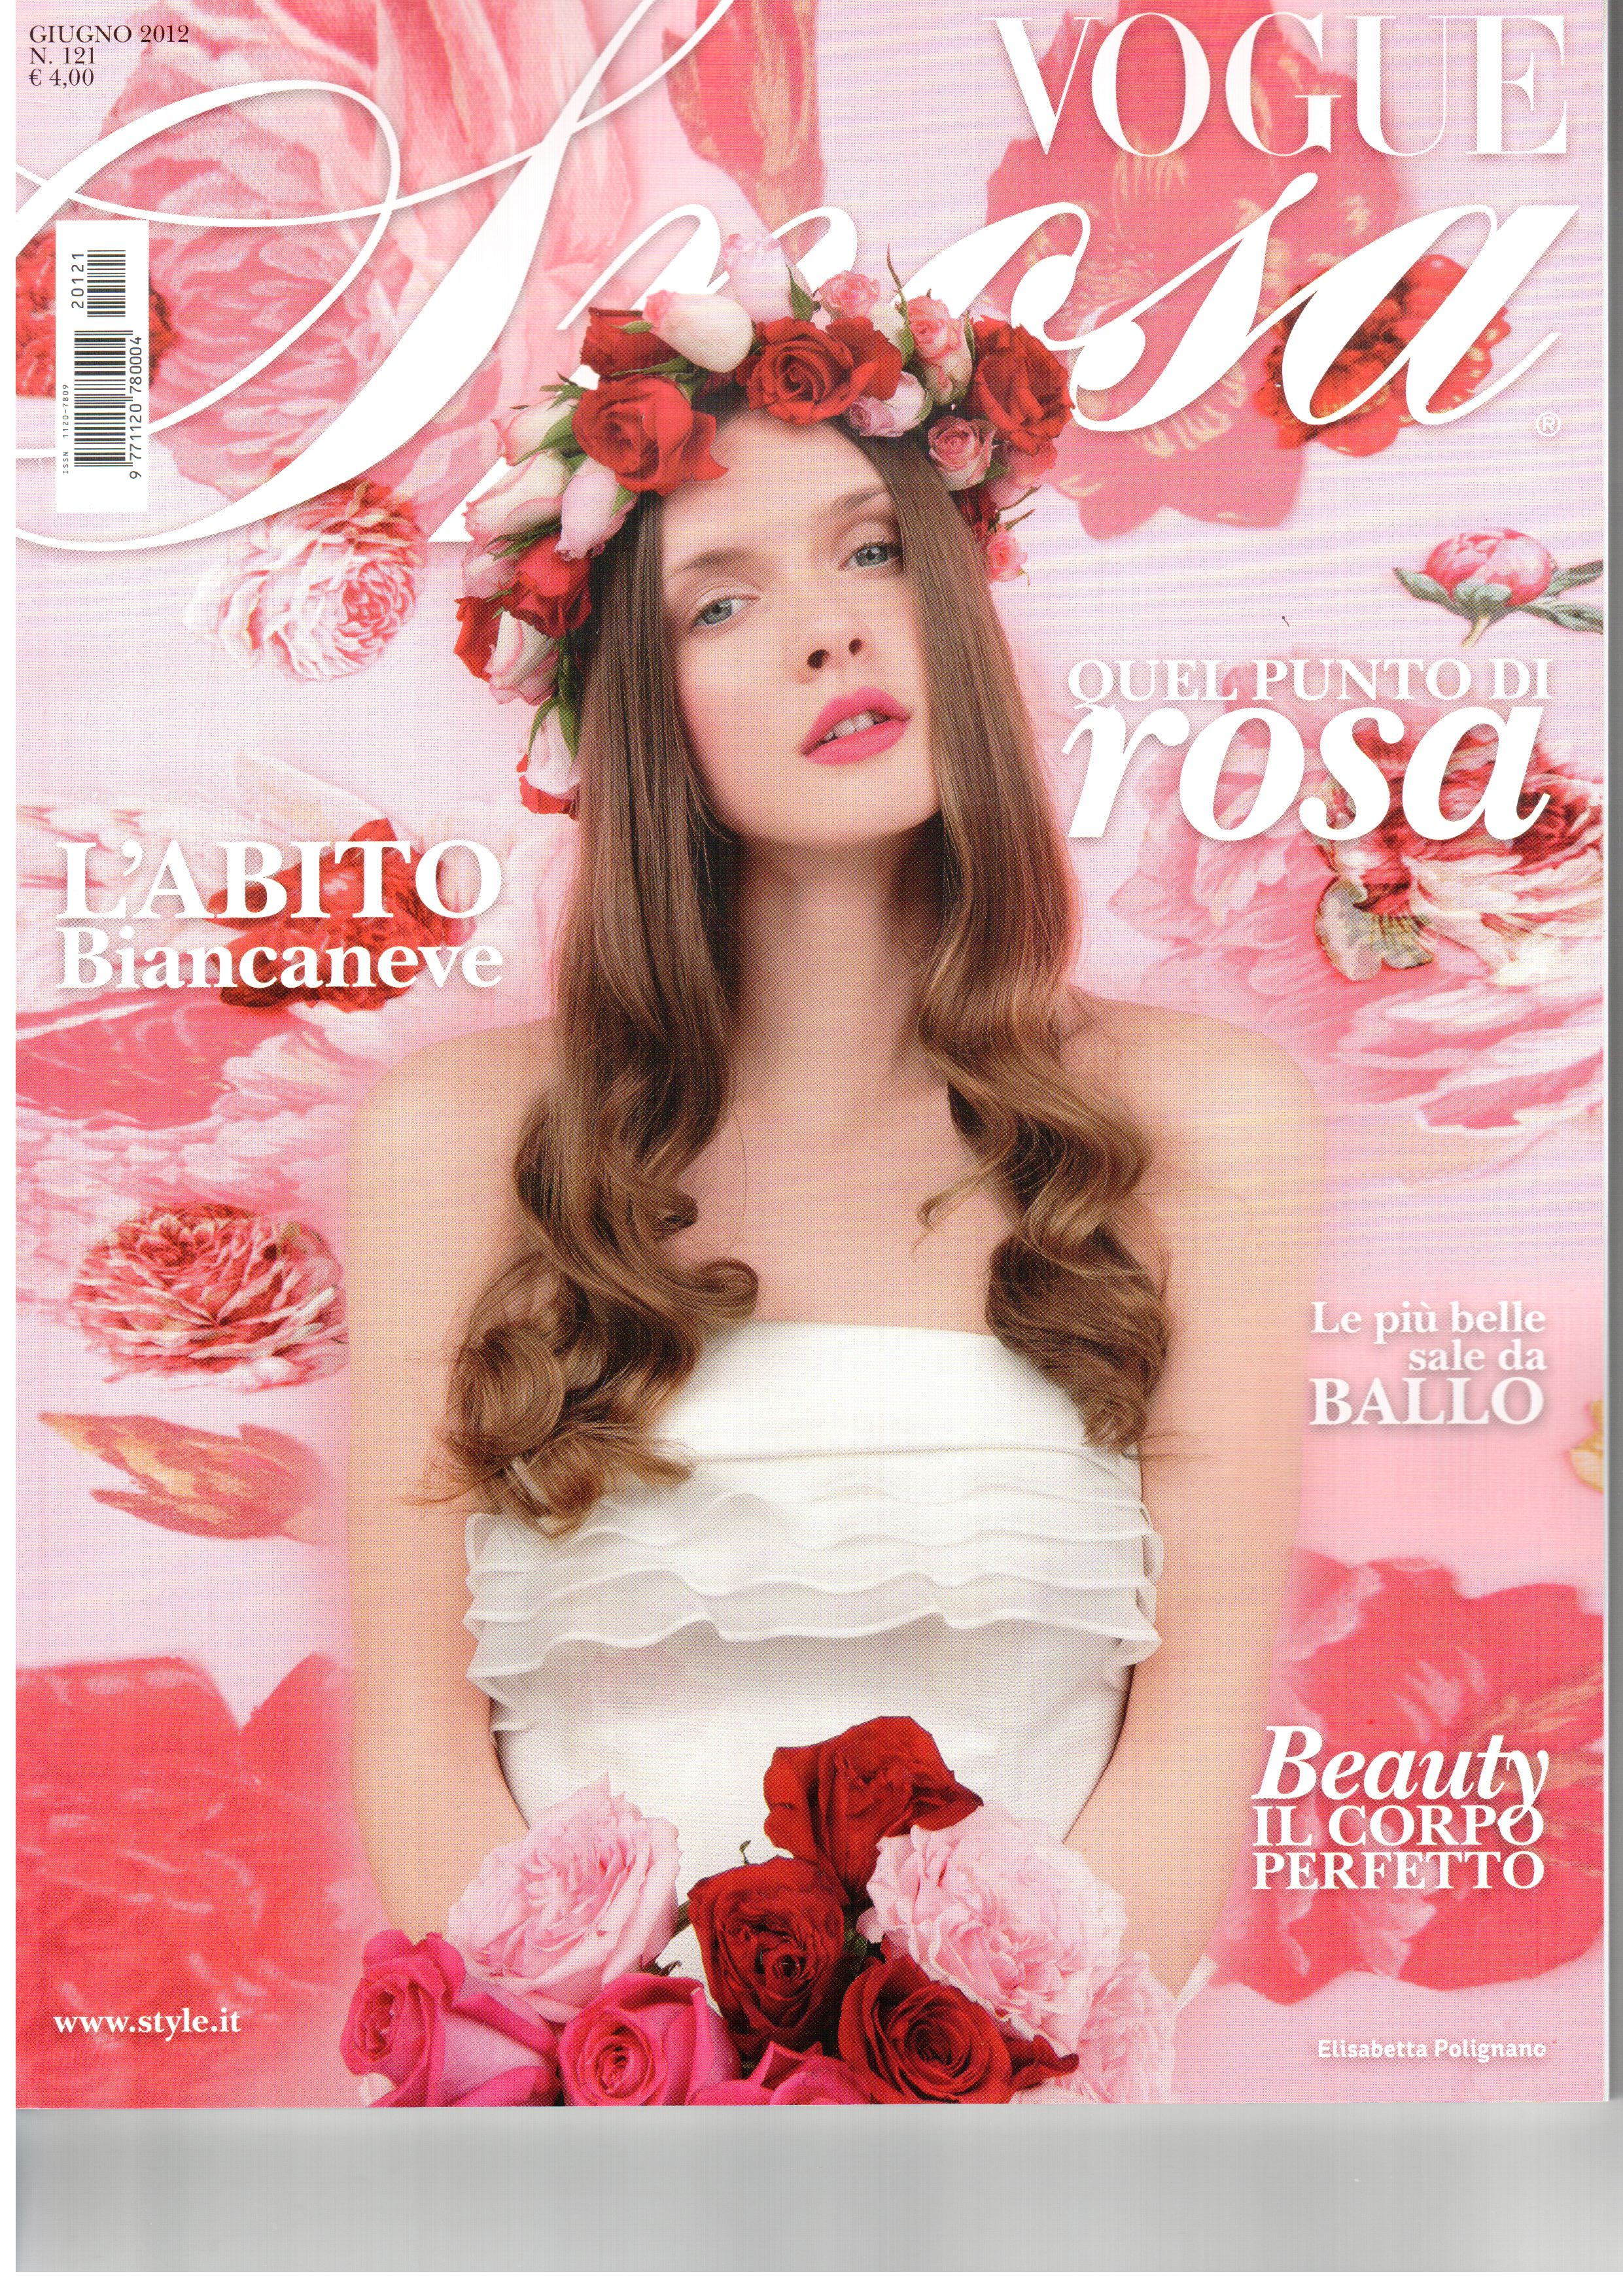 2012 June-Vogue Sposa-cover.jpg